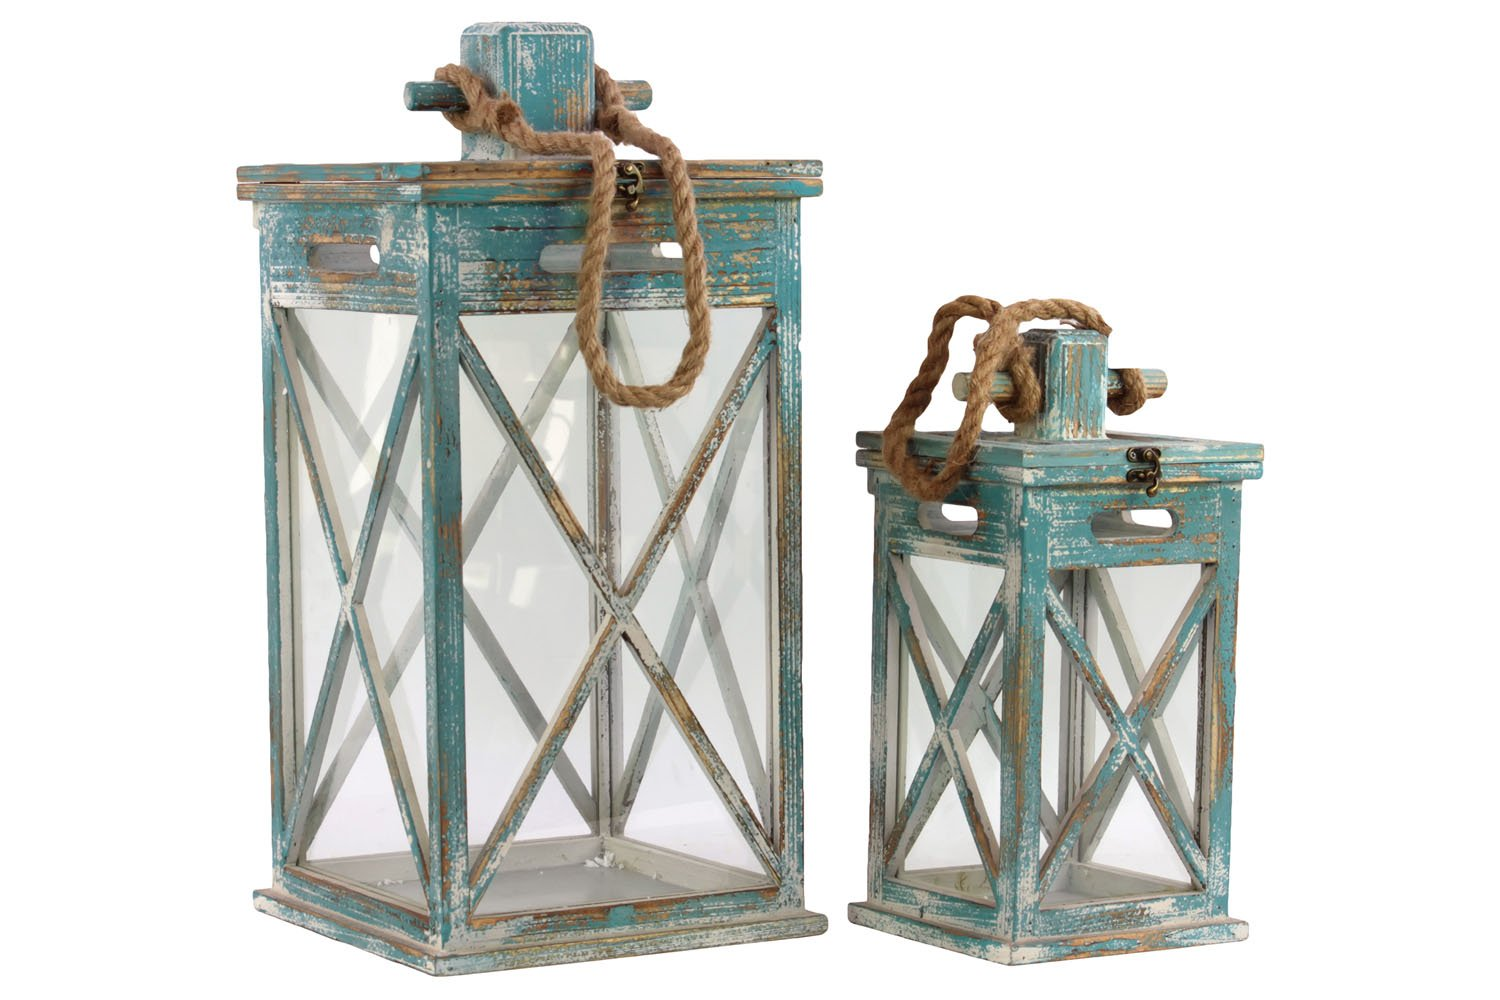 Urban Trends 26108 Wooden Lantern with Rope Hanger Set of Two Tinted Wood Finish Turquoise